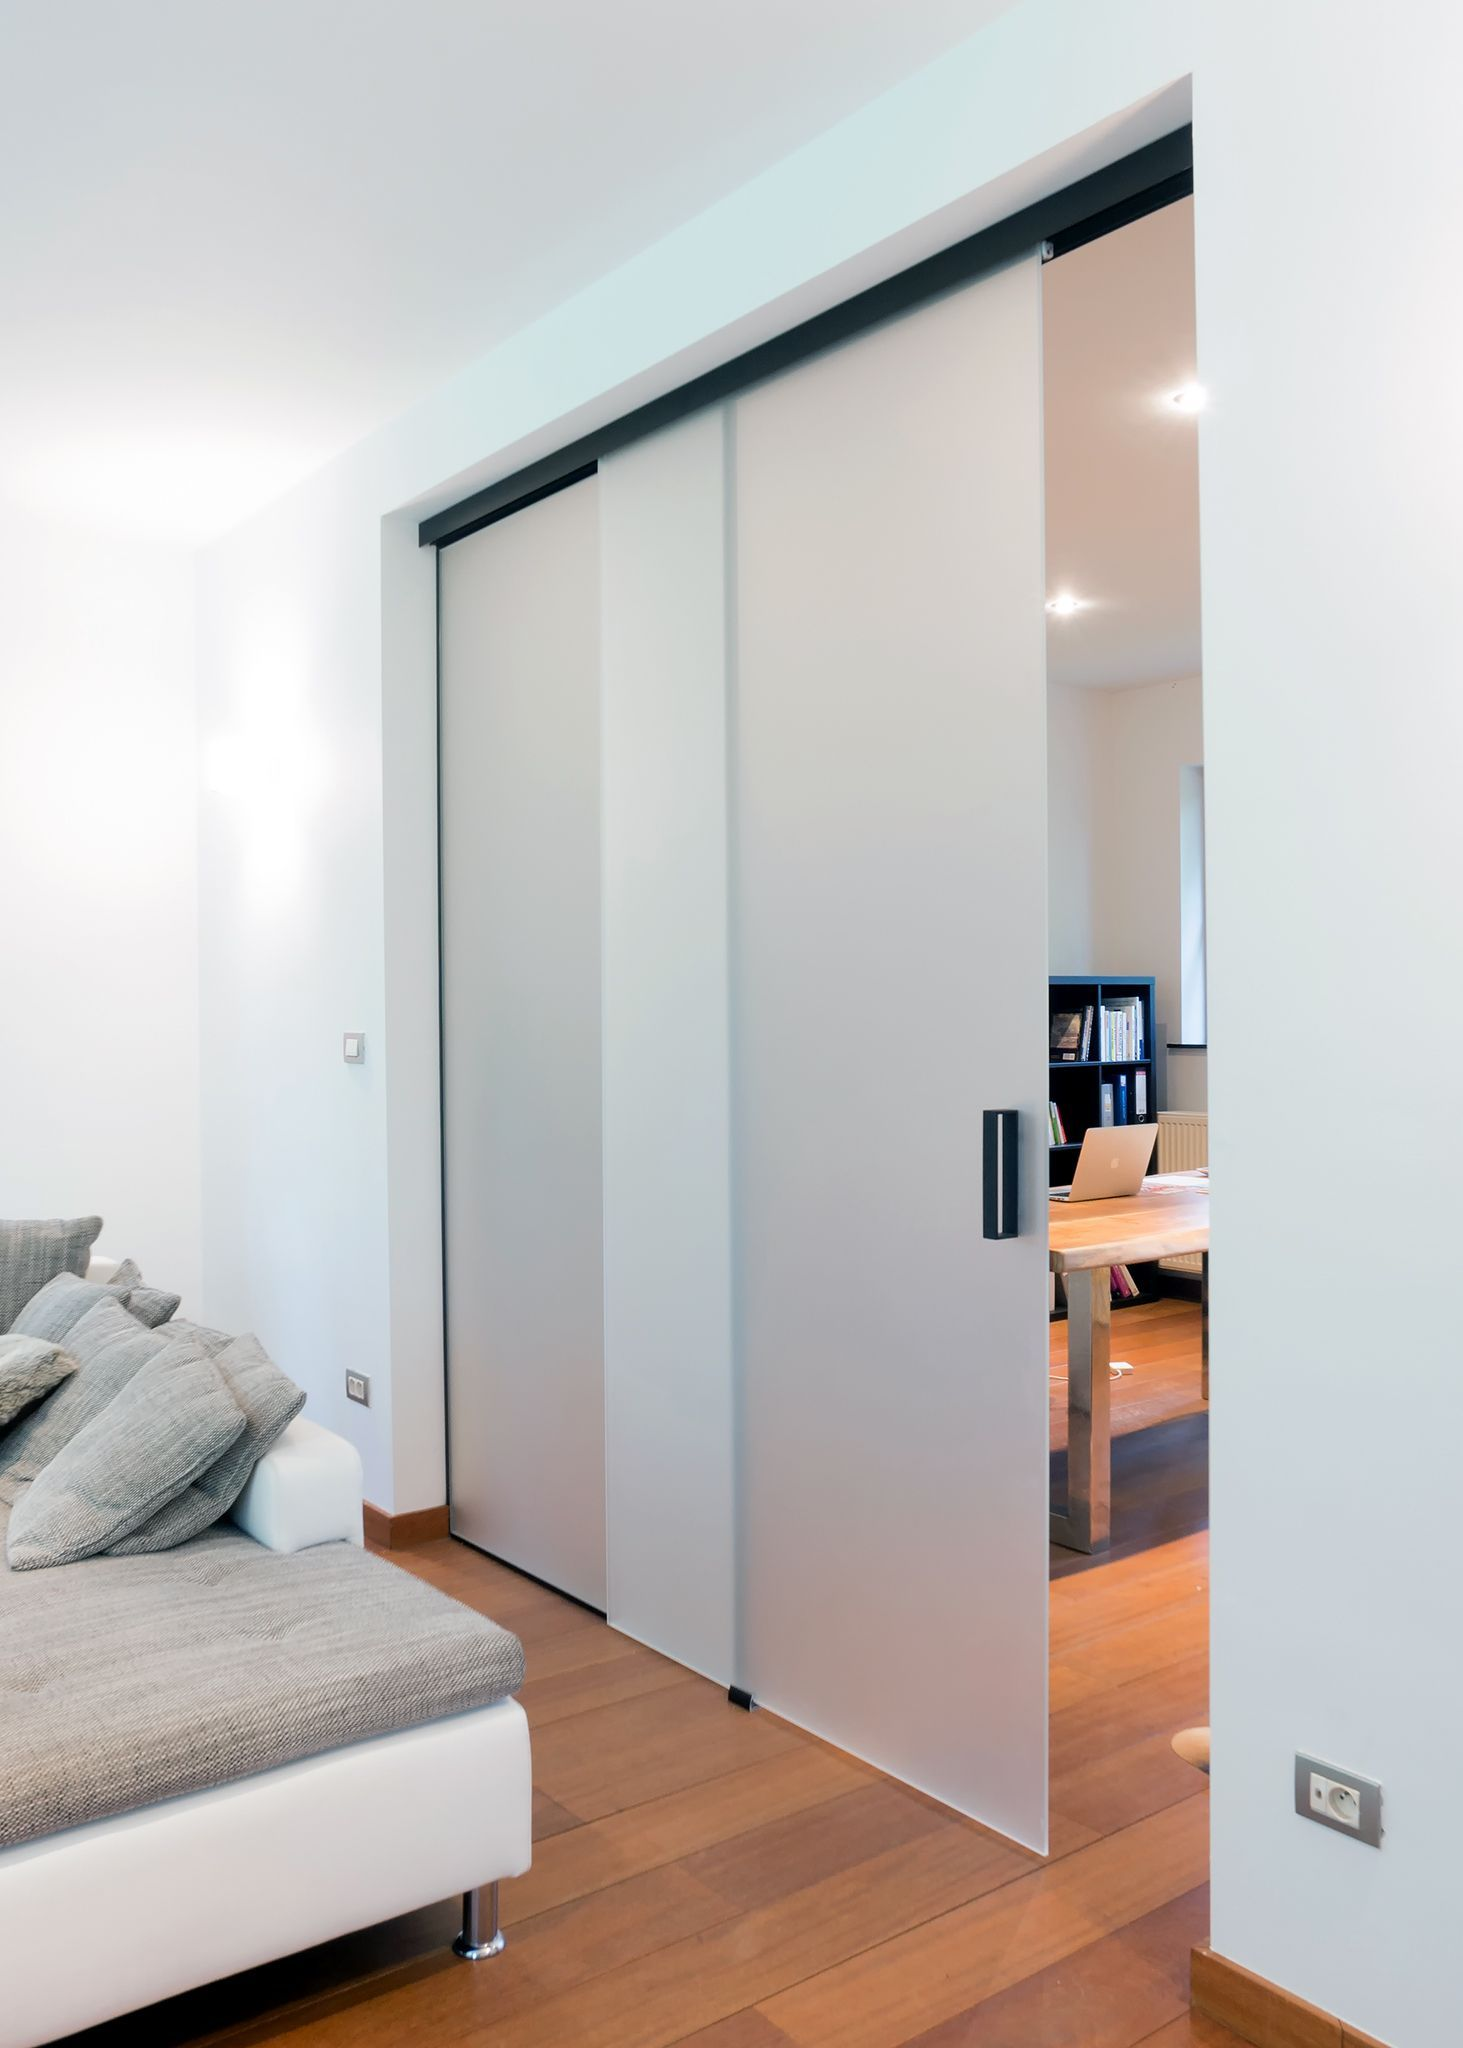 frosted glass sliding doors interior on image result for glass sliding door with fixed panel sliding glass door glass doors interior sliding doors glass sliding door with fixed panel